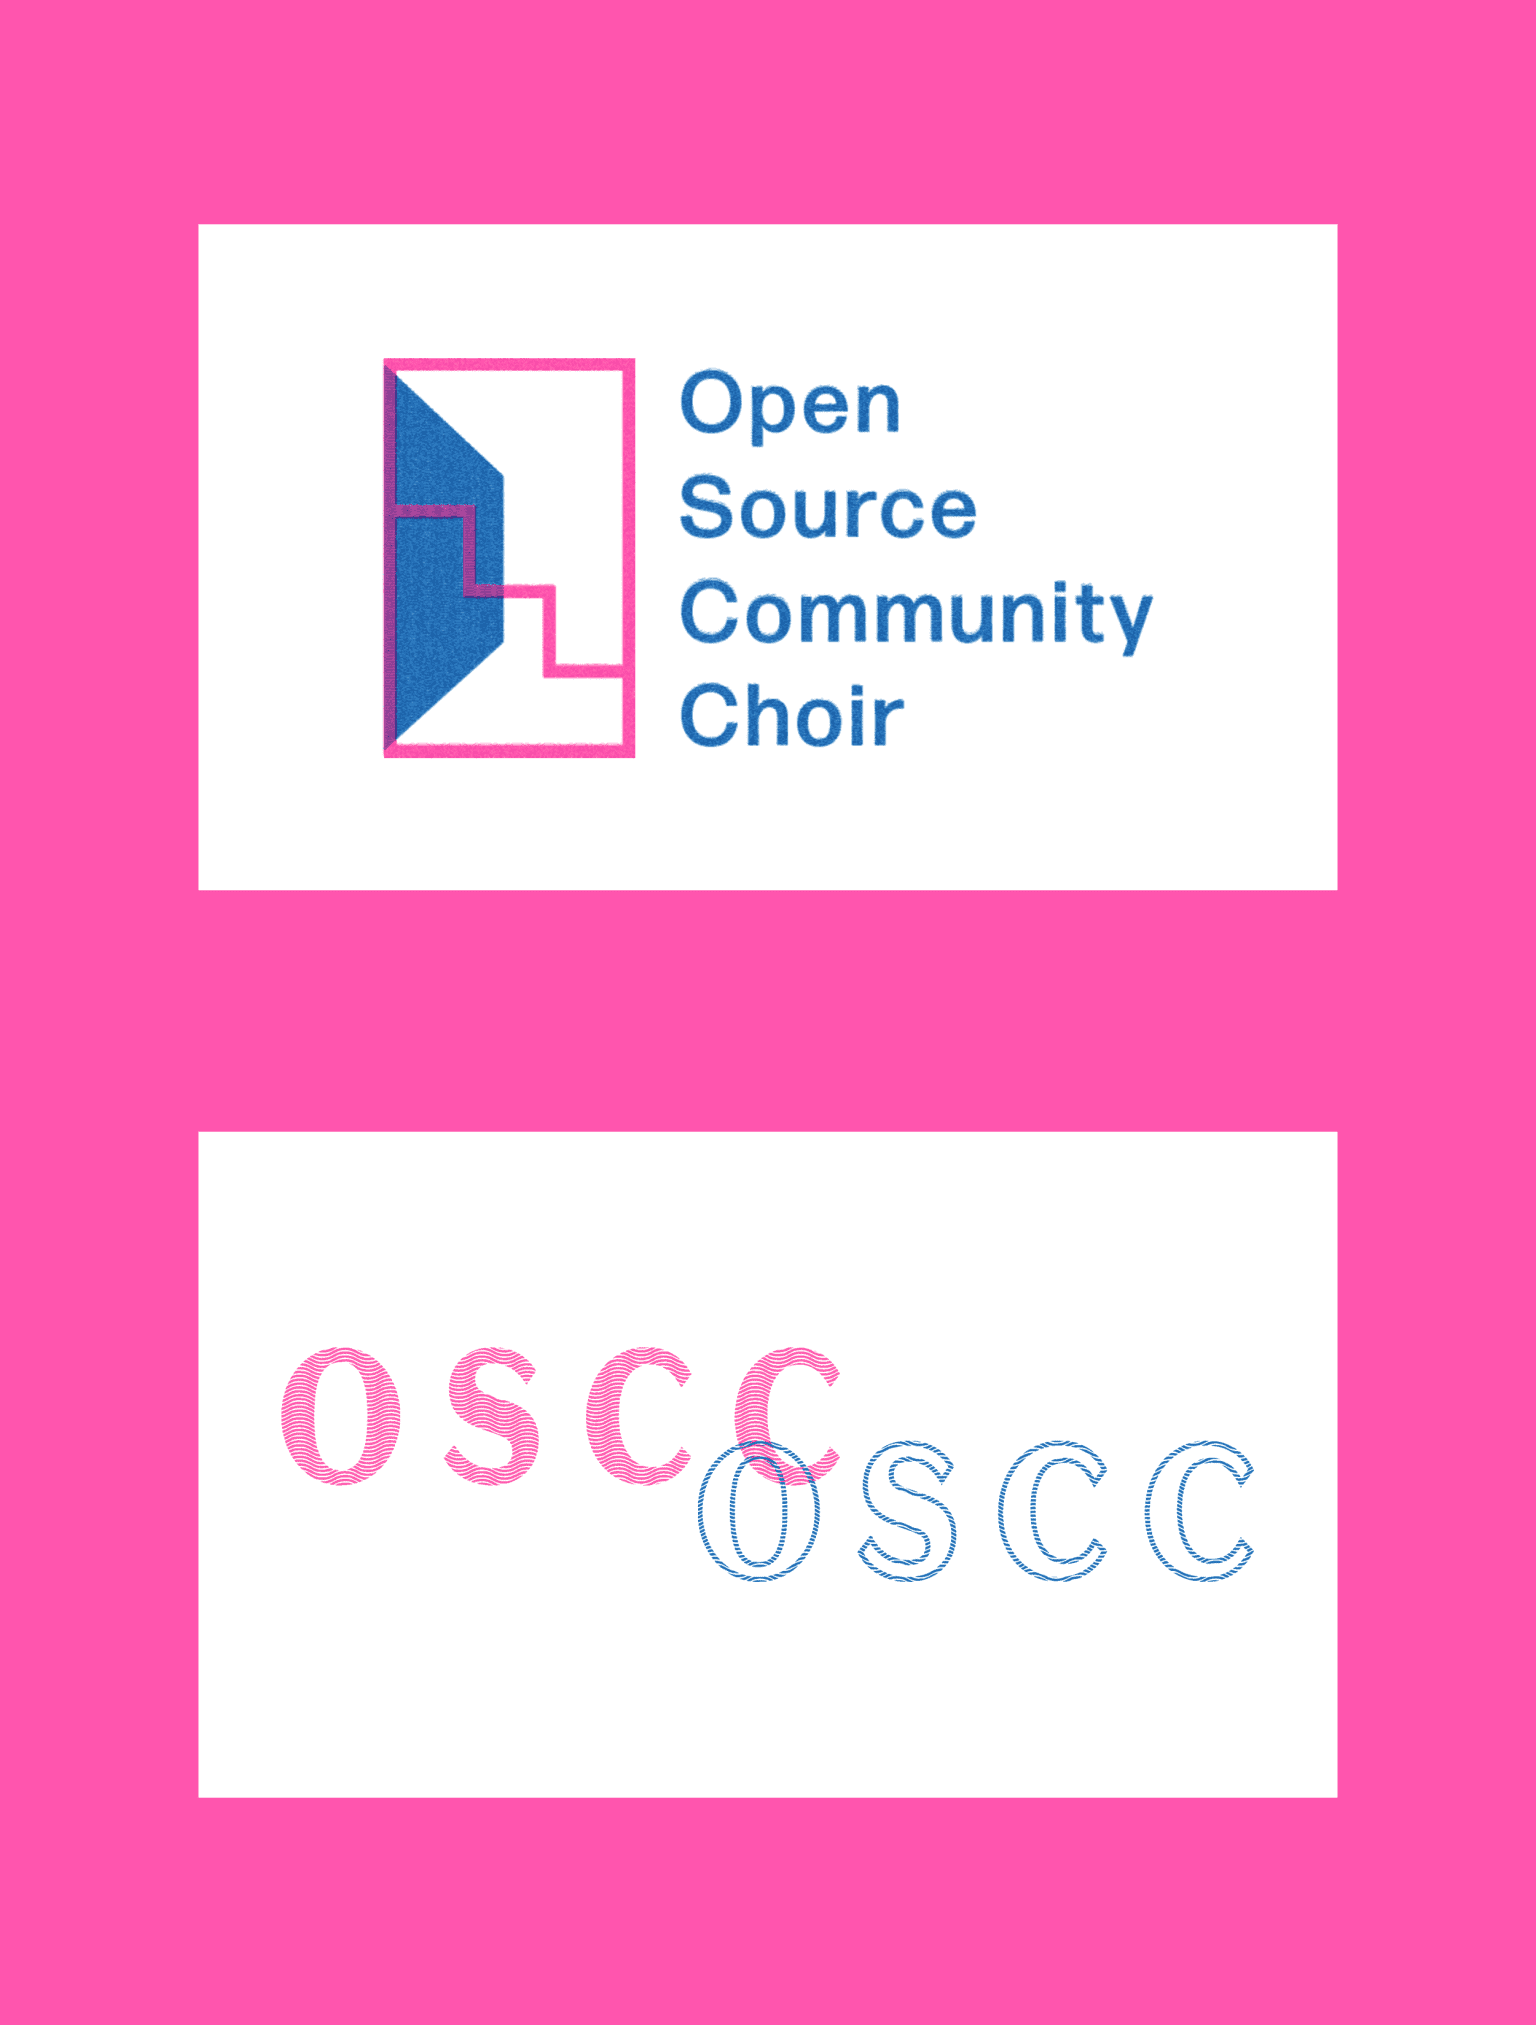 Open Source Community Choir